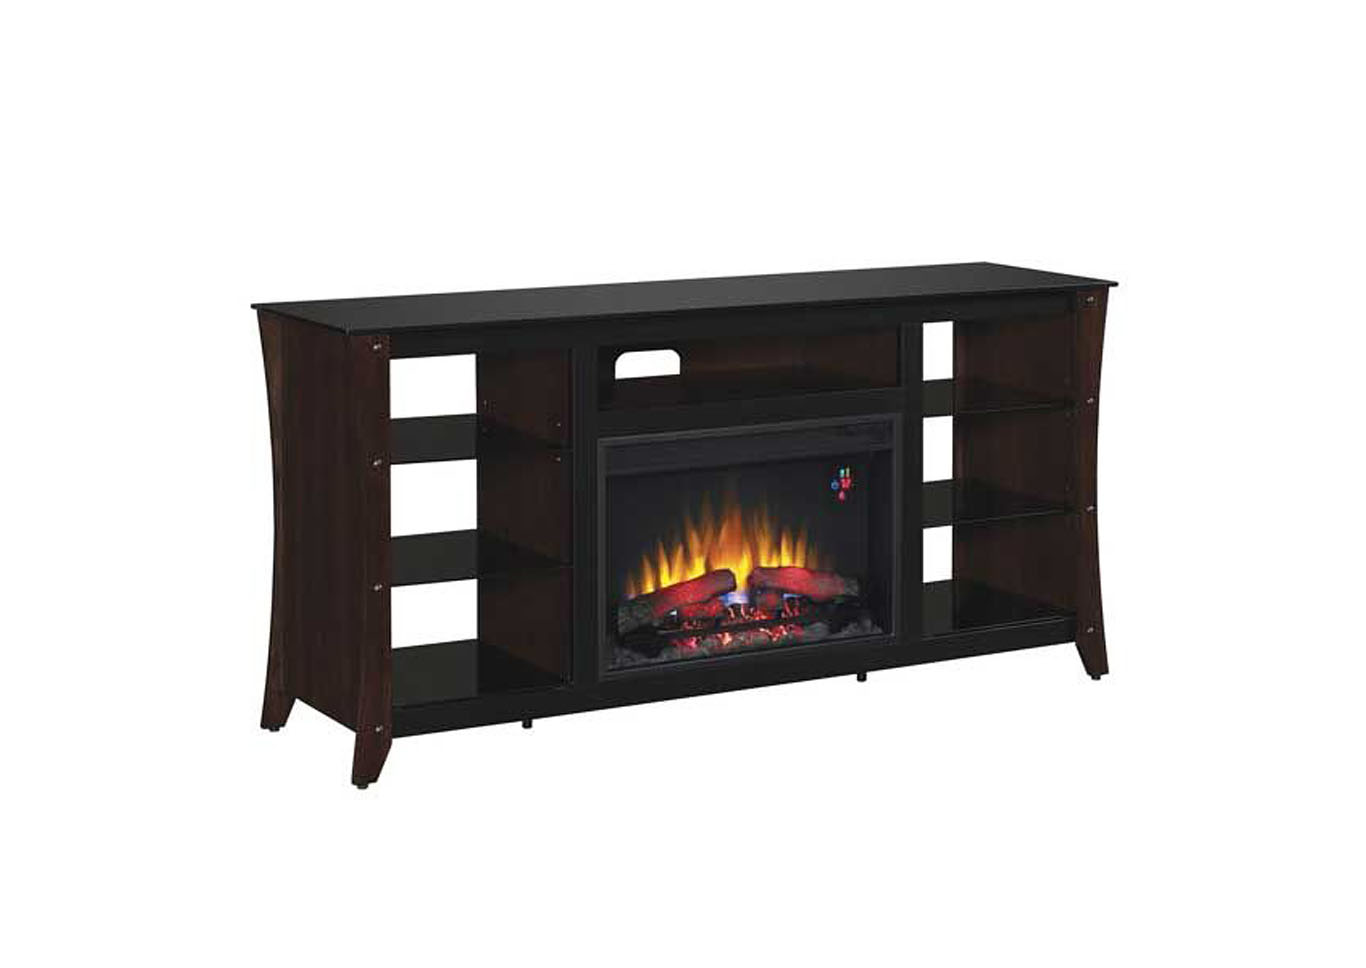 Marlin Fireplace,Instore